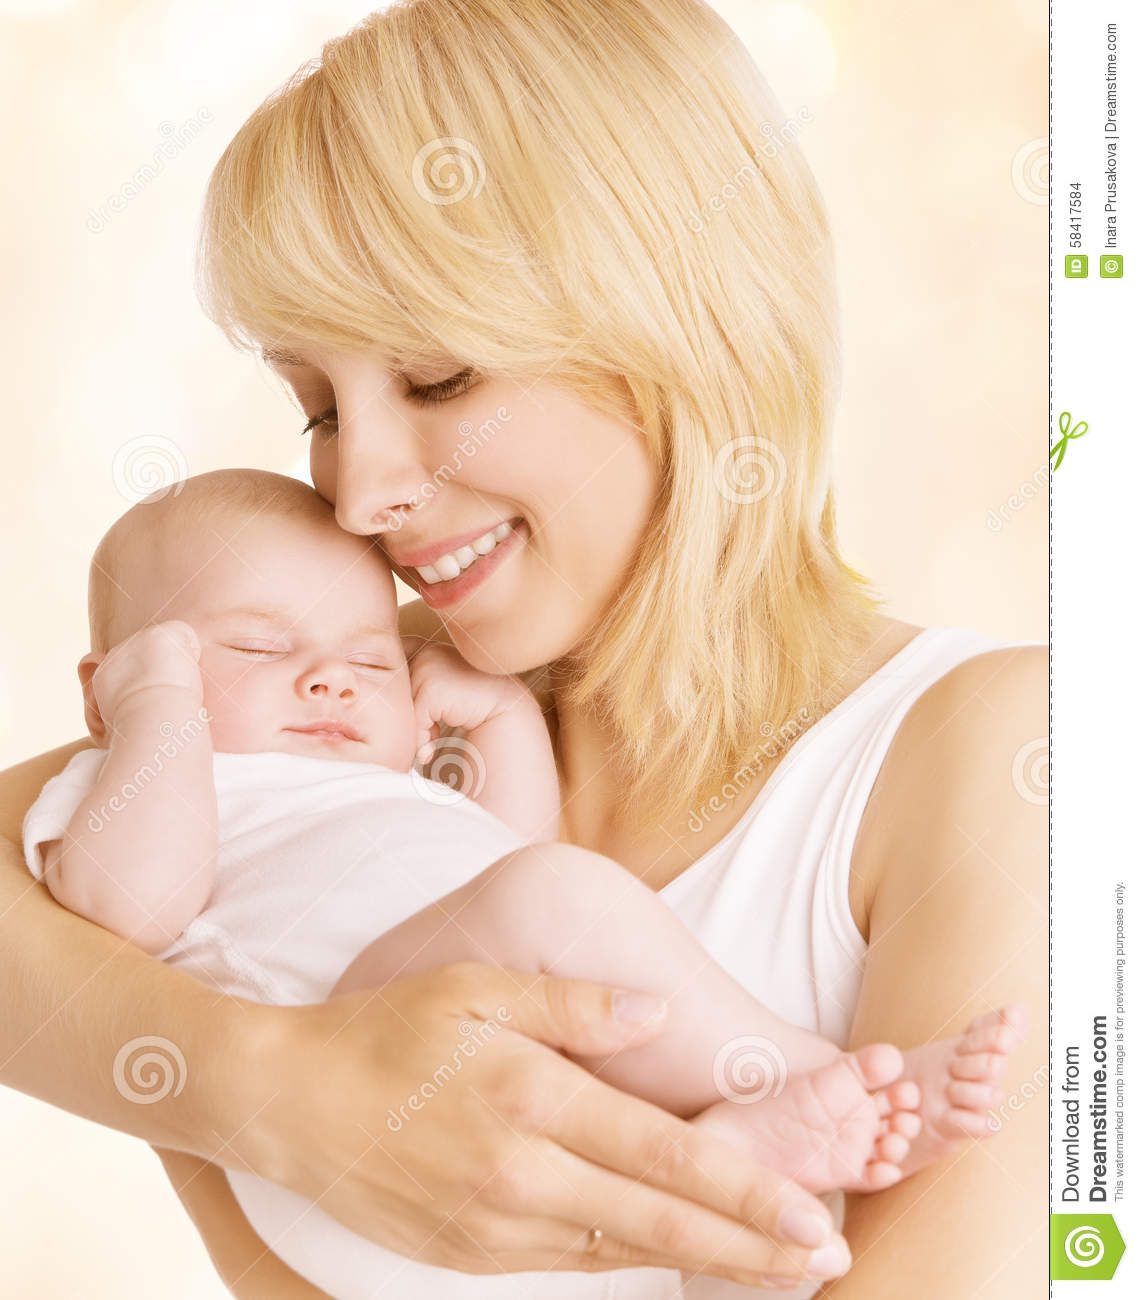 Mother and Newborn Baby Family Portrait, Woman Embrace New Born